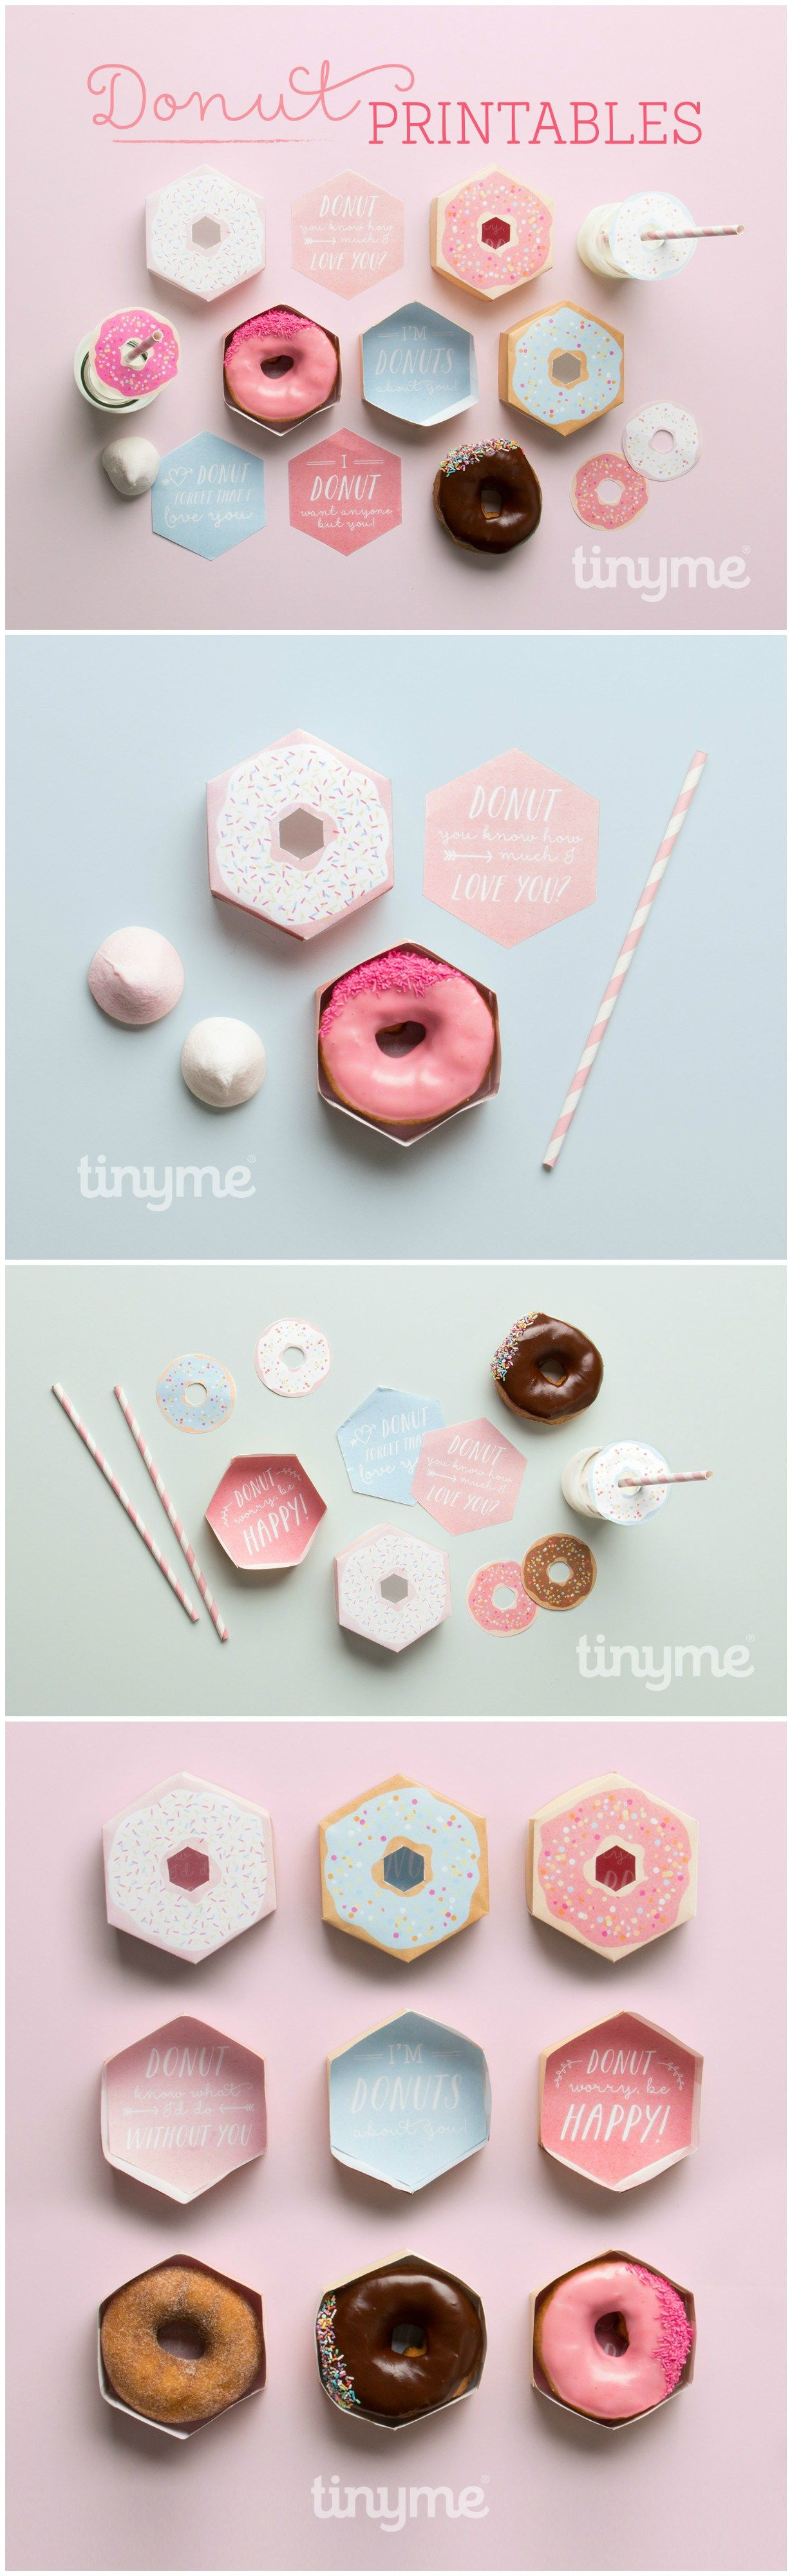 Free printable donut boxes, straw toppers and sweet messages. This is cute!